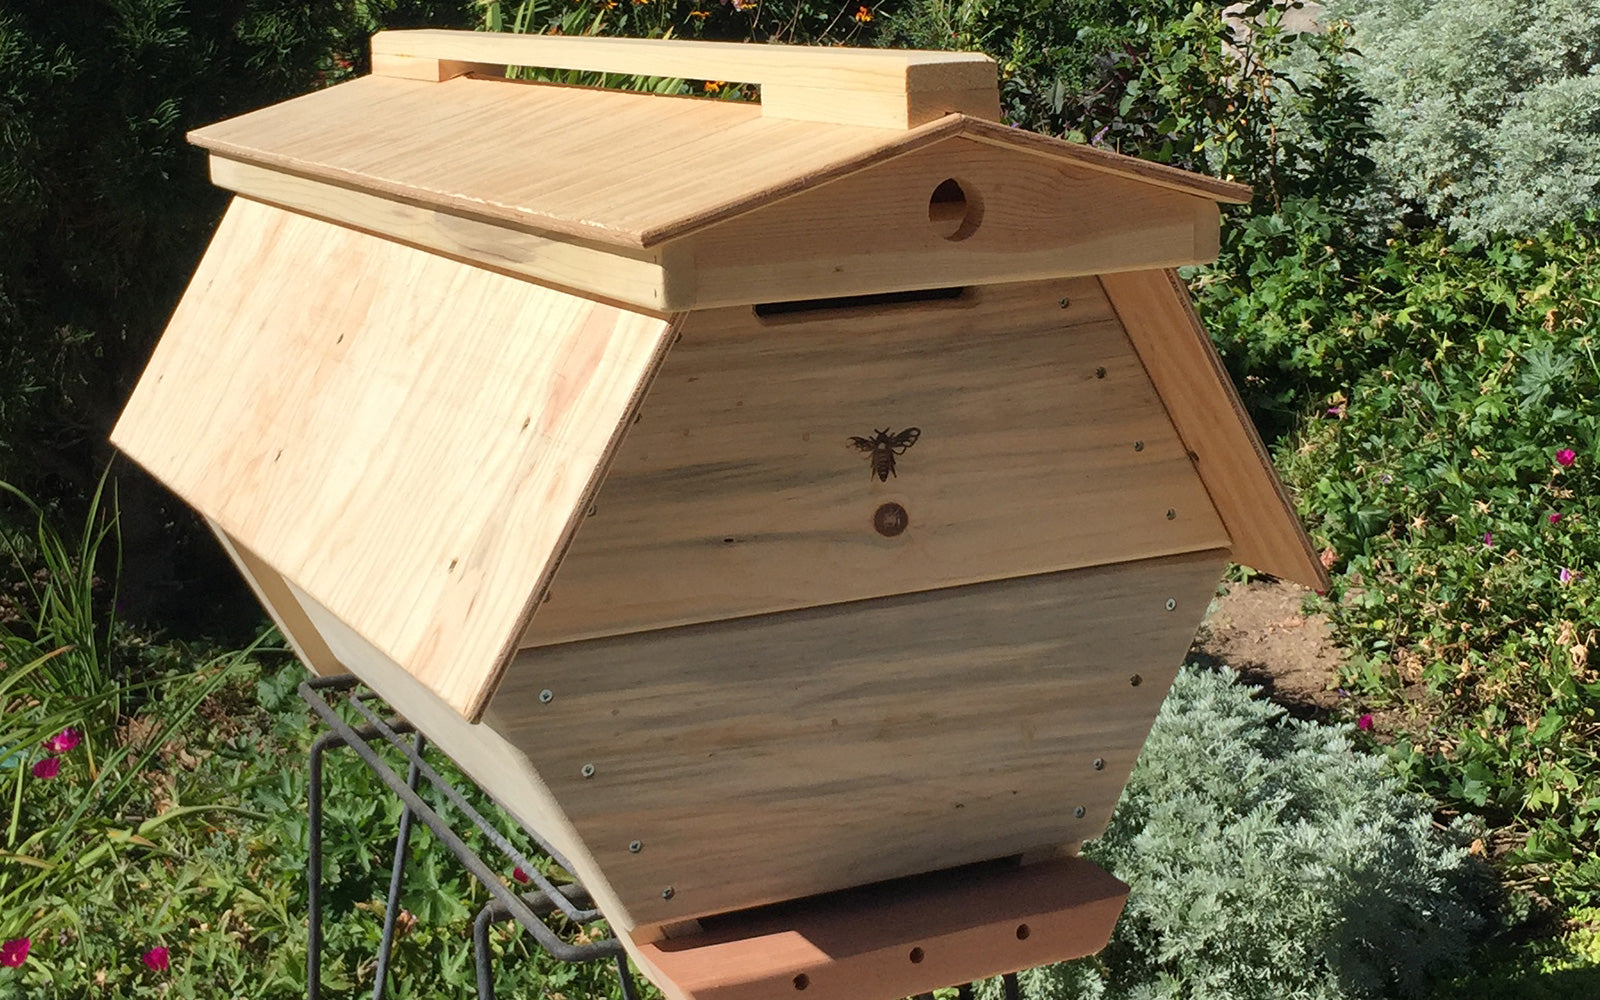 The Cathedral Hive Fully Assembled Bee Hive for Sale